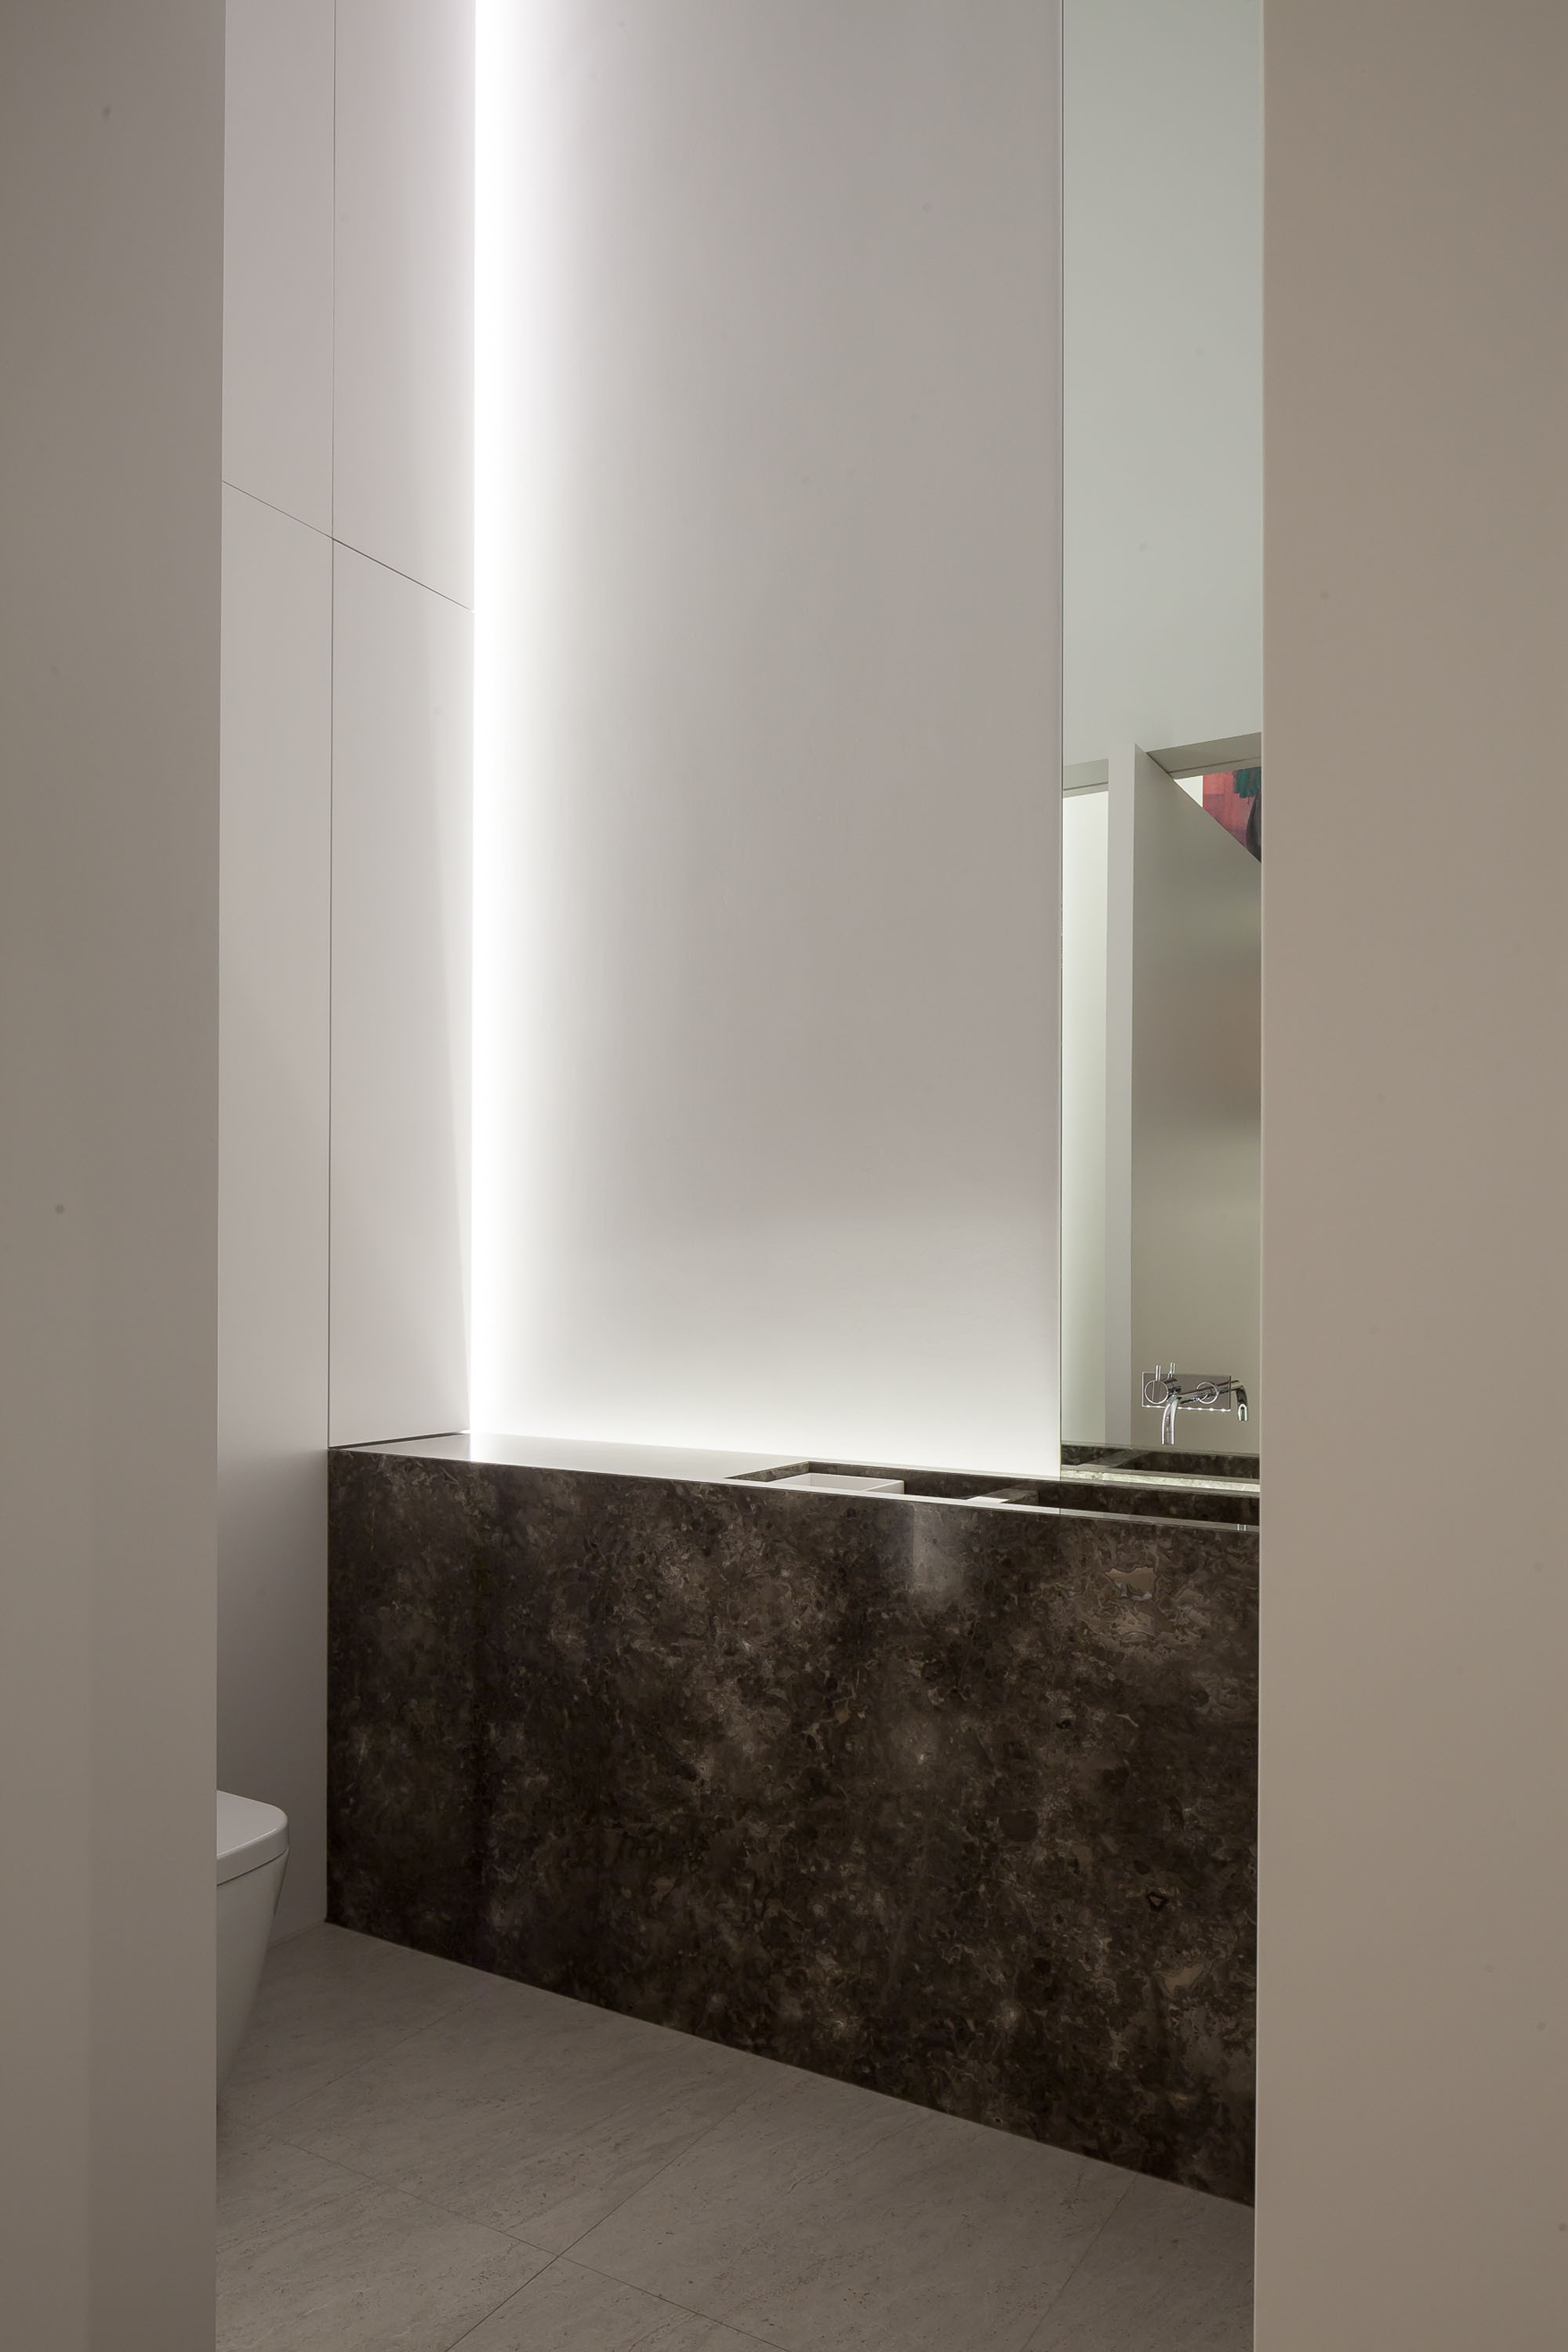 Led Verlichting Wc Galería De Residencia Dm Cubyc Architects Bvba 16